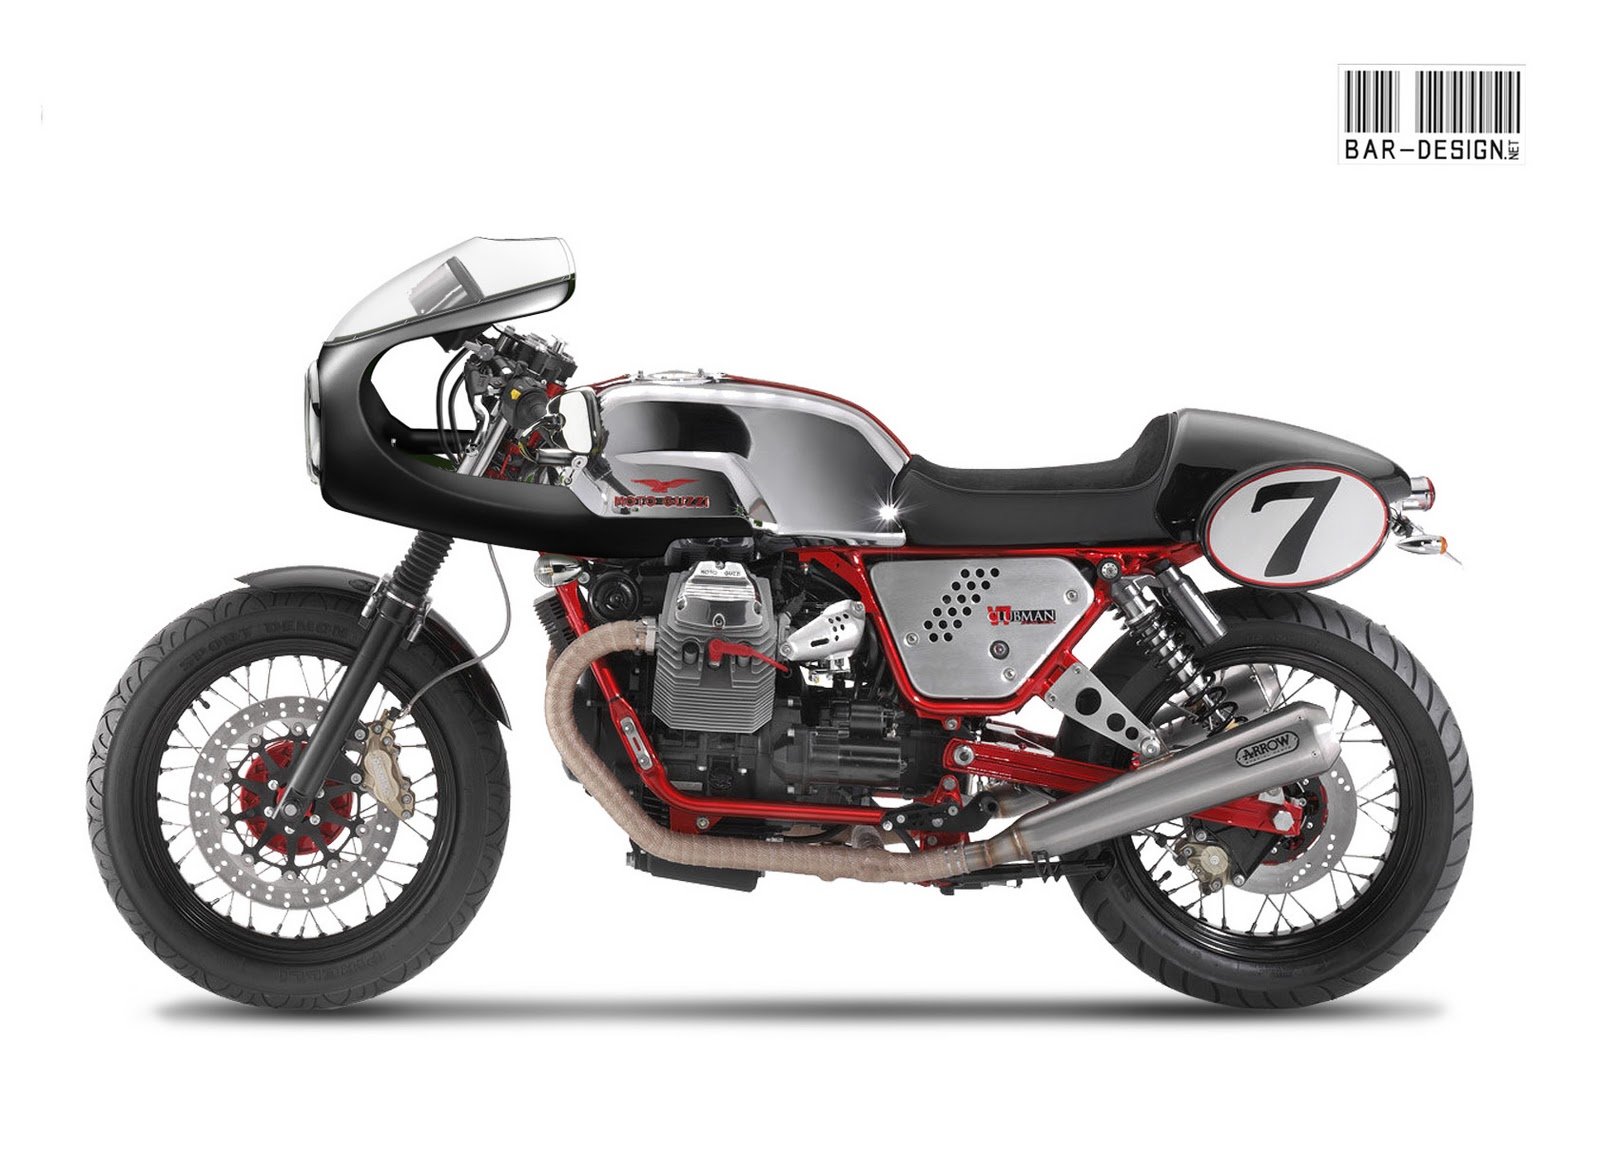 Moto guzzi 1000 photo - 3